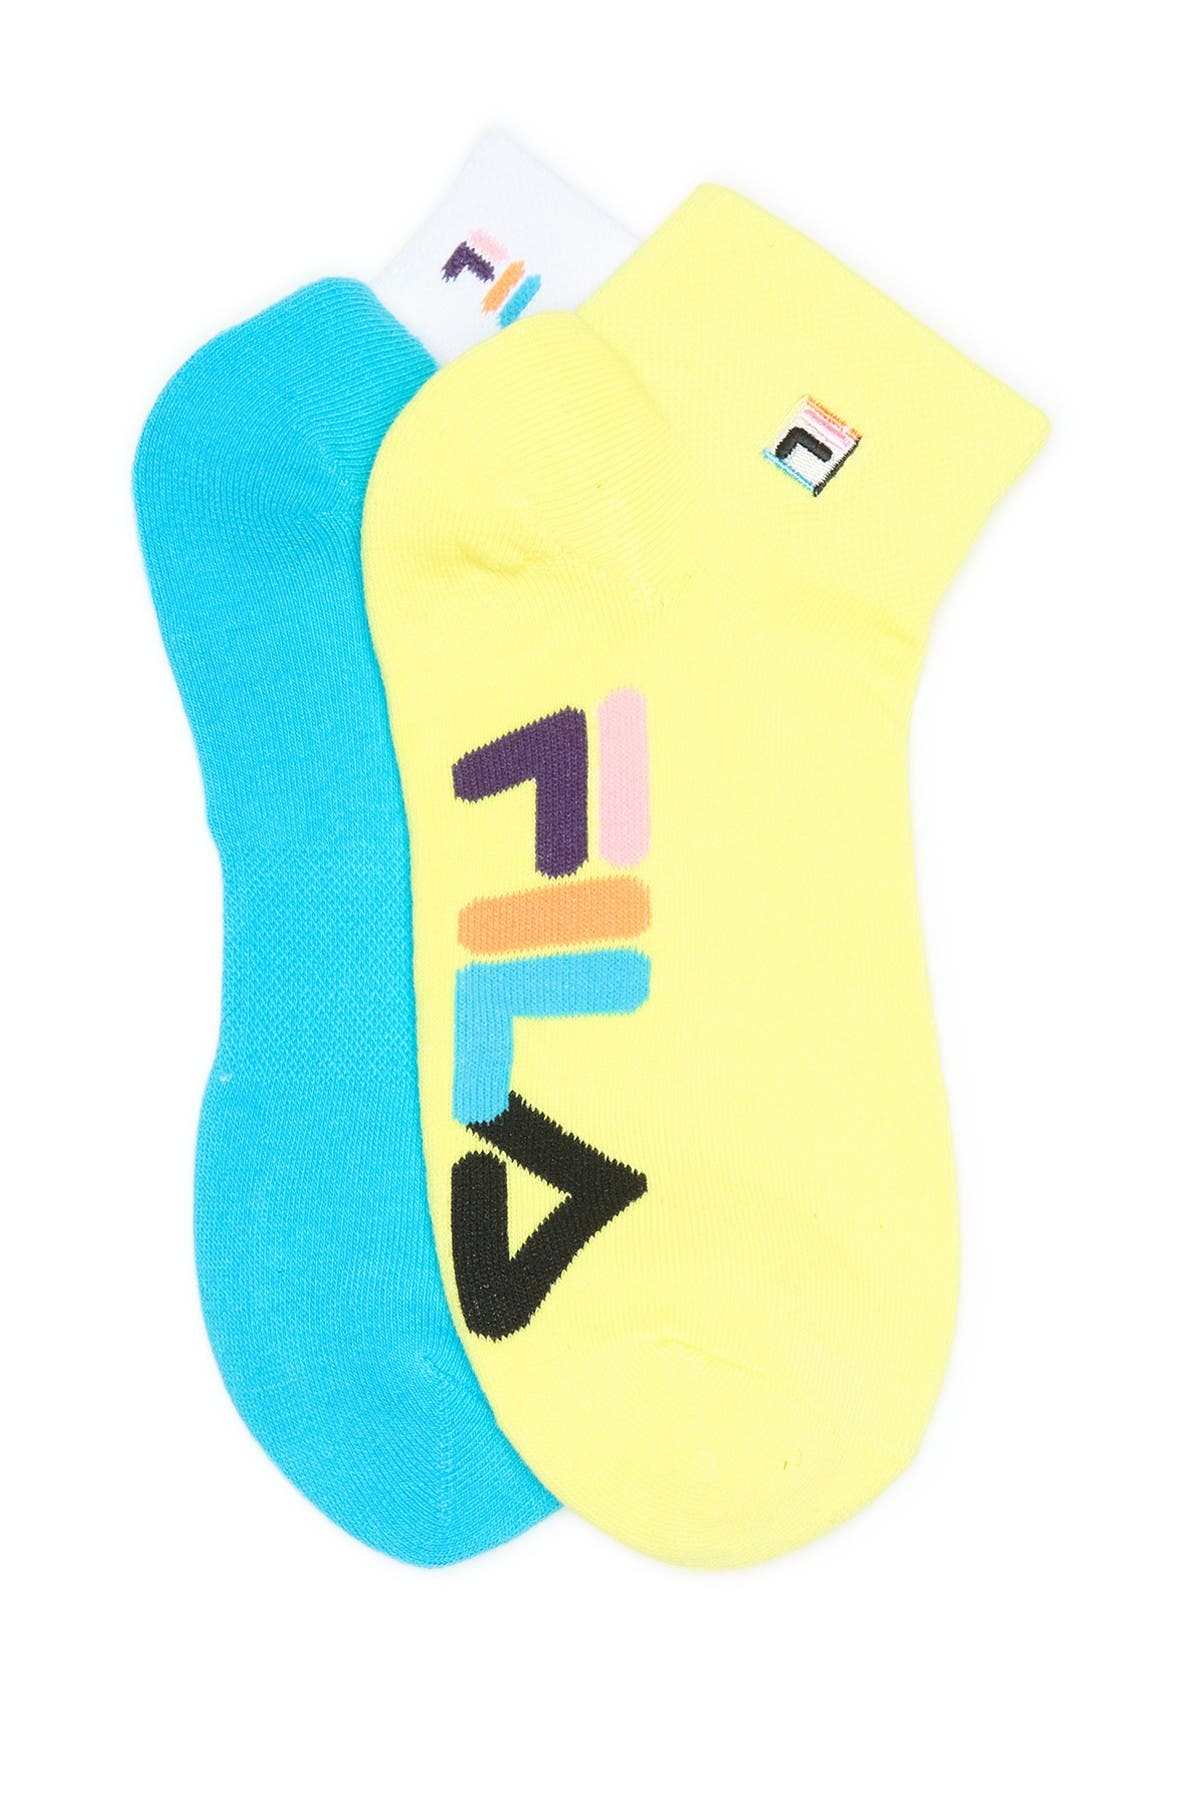 Image of FILA USA Explore Quarter Socks - Pack of 2